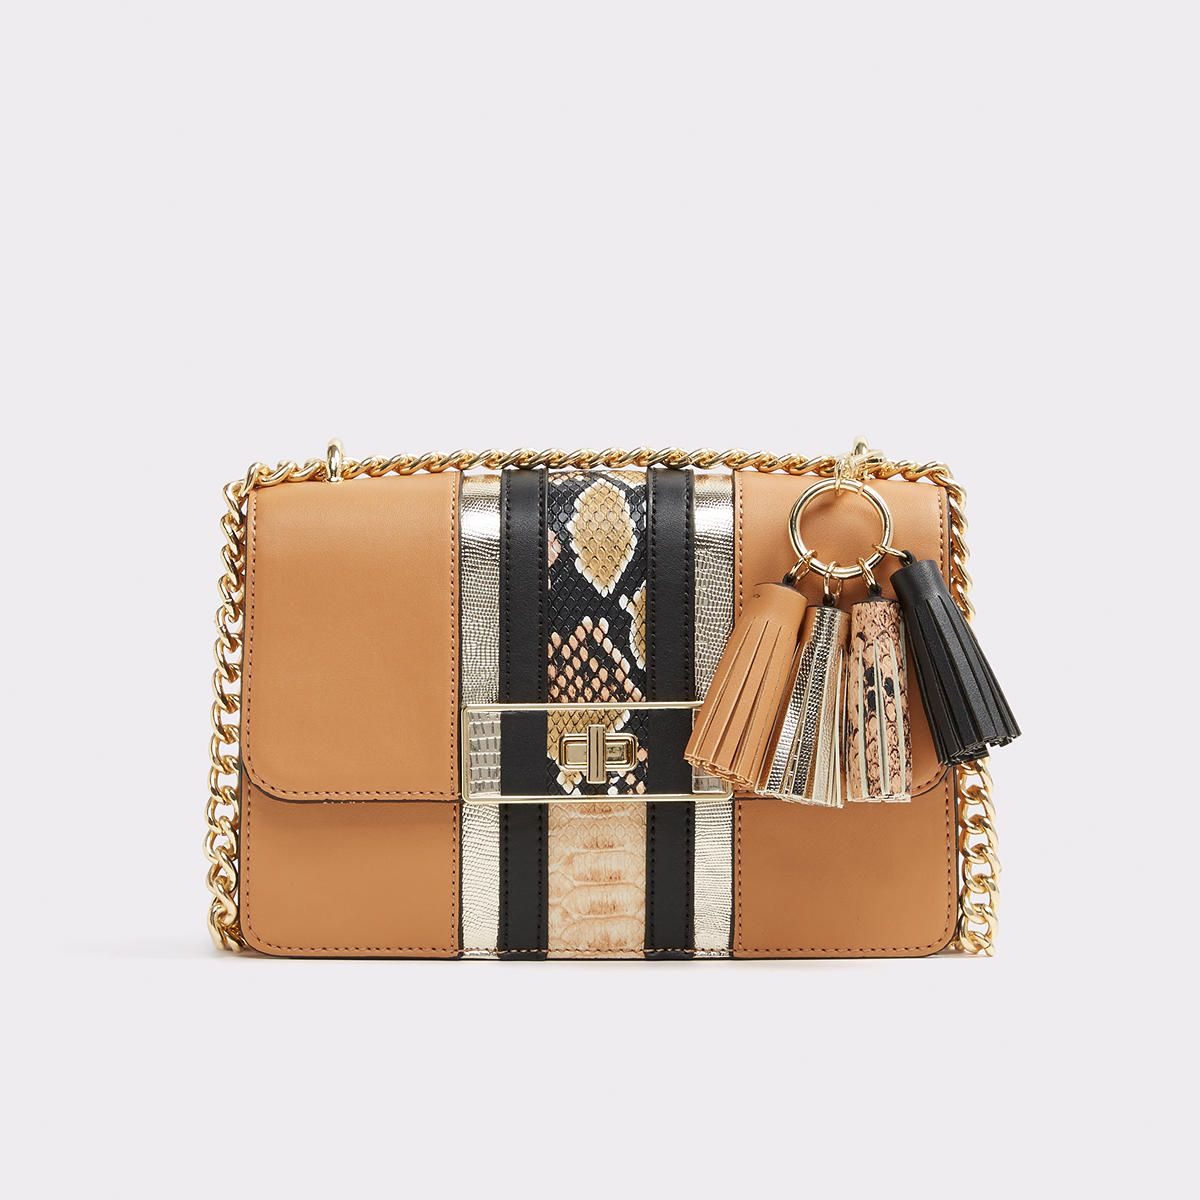 6a953492837 Borgotaro Racer stripes and faux snakeskin unite for an eclectic touch on a  classically structured handbag. Chain strap and gold turn-lock closureadd  even ...